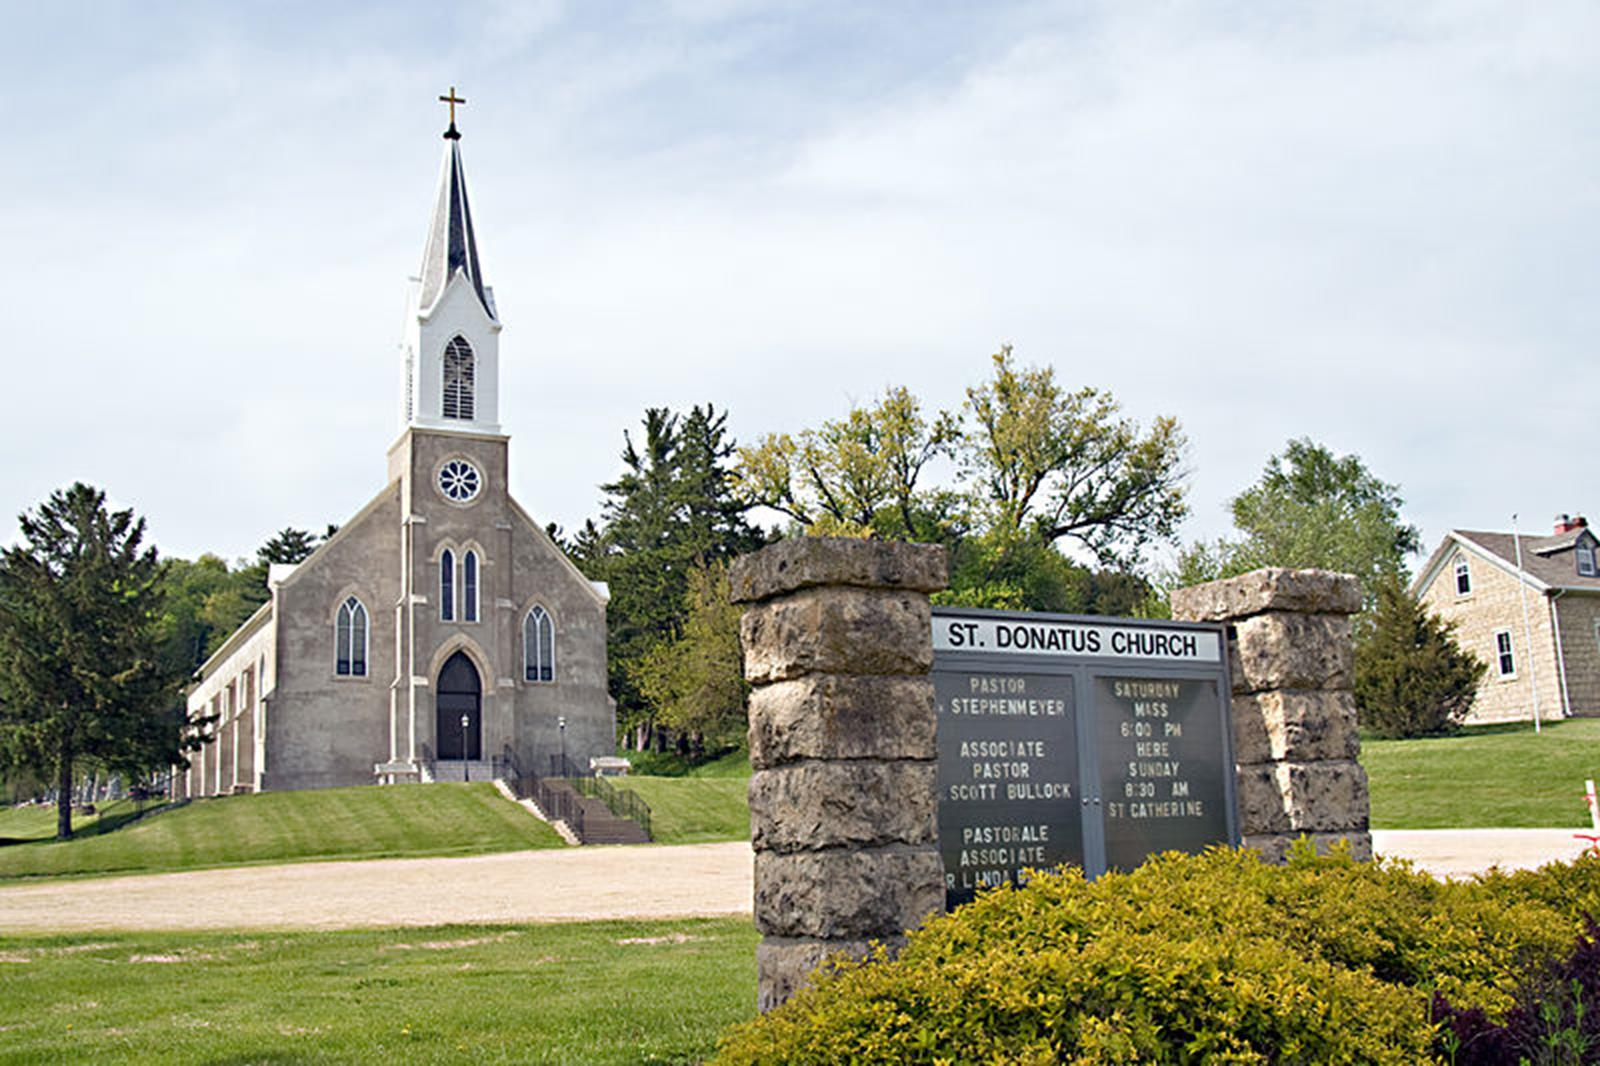 St. Donatus Catholic Church in St. Donatus, Iowa